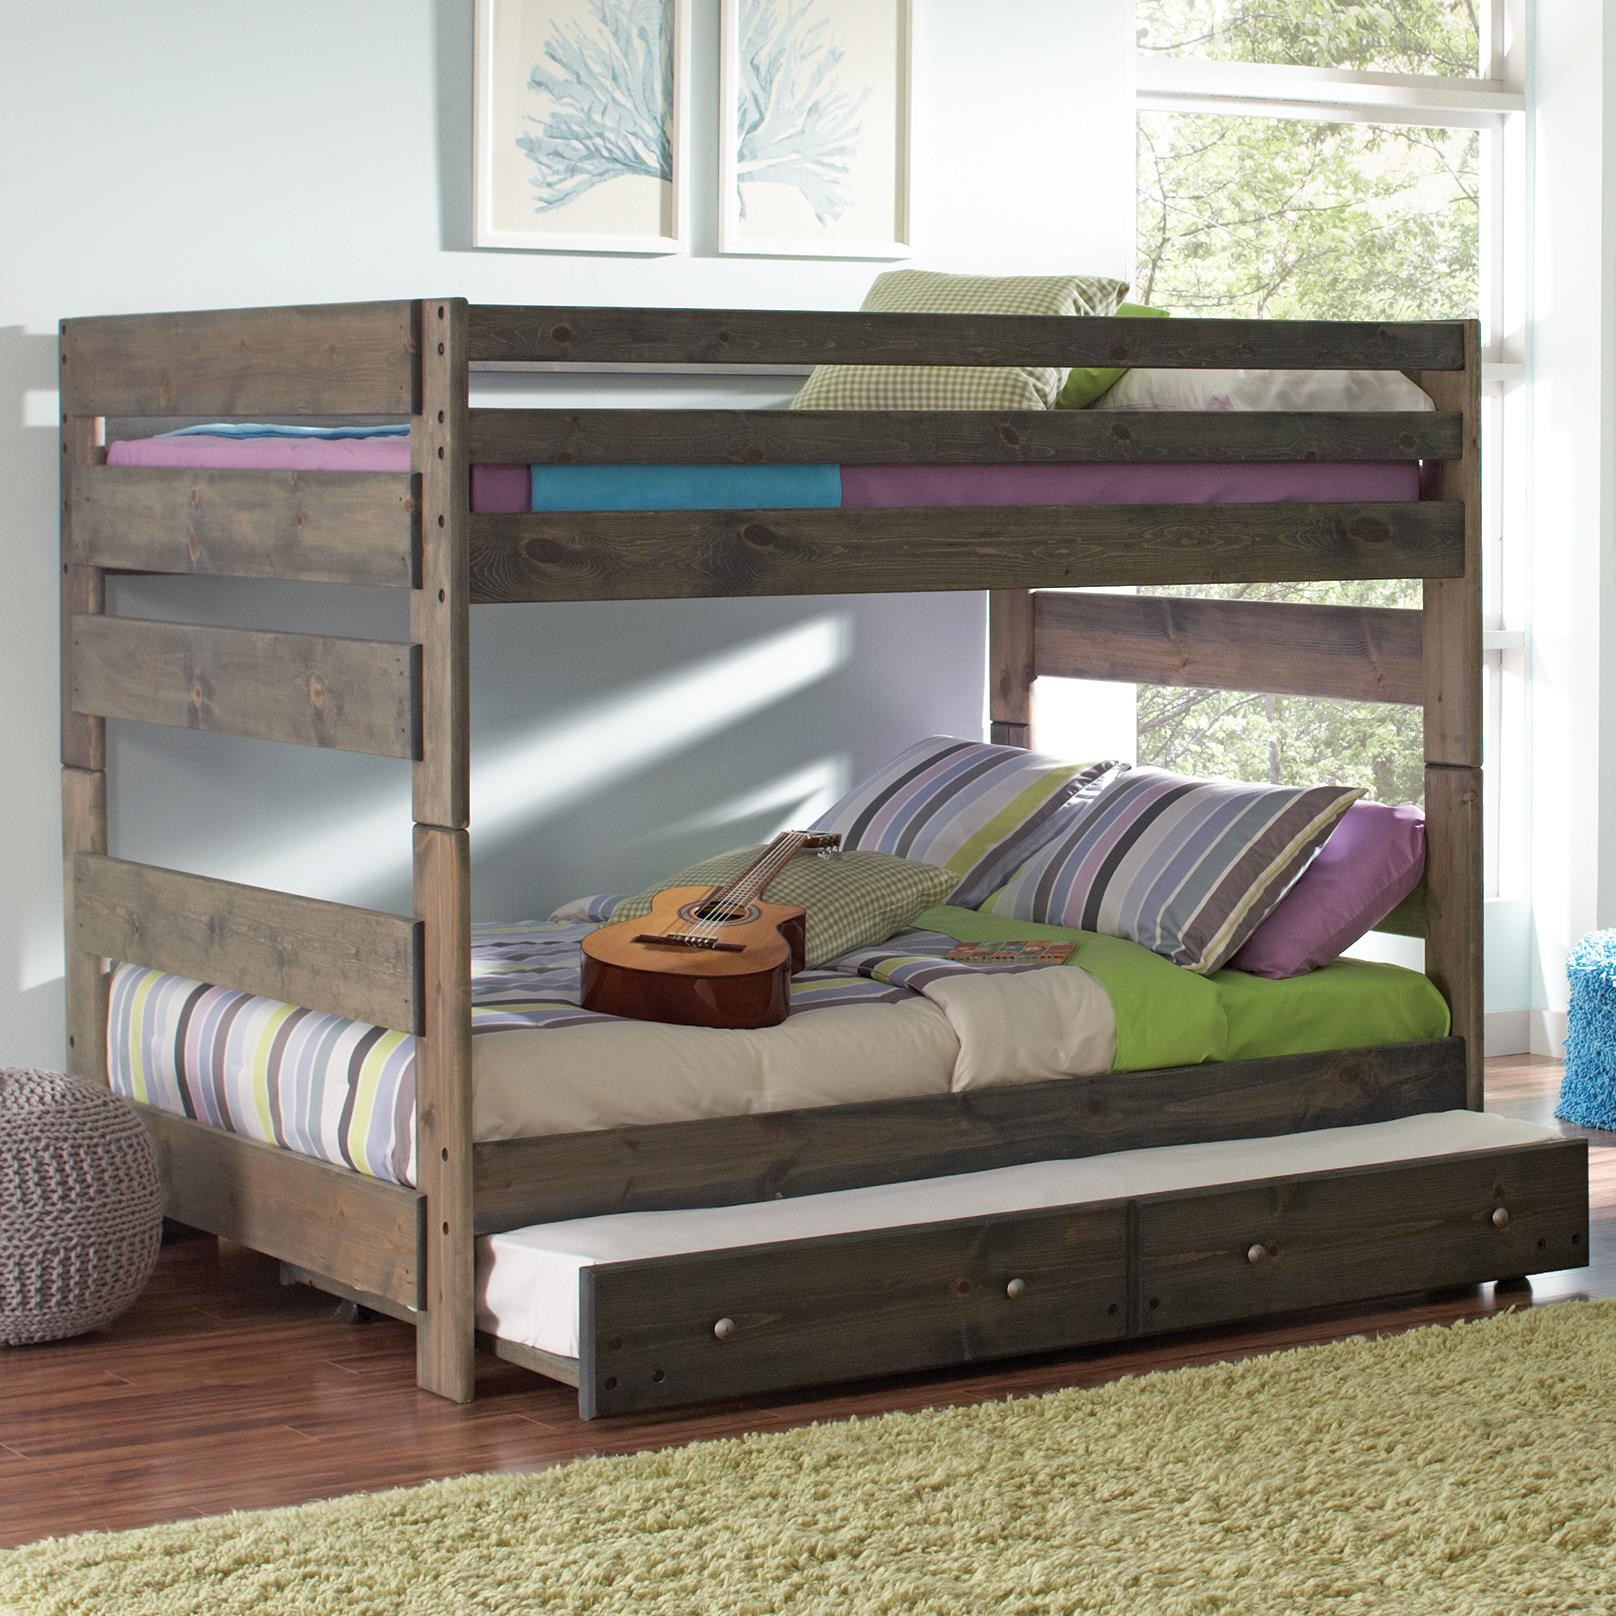 Full Over Full Bunk Bed with Pull out Trundle